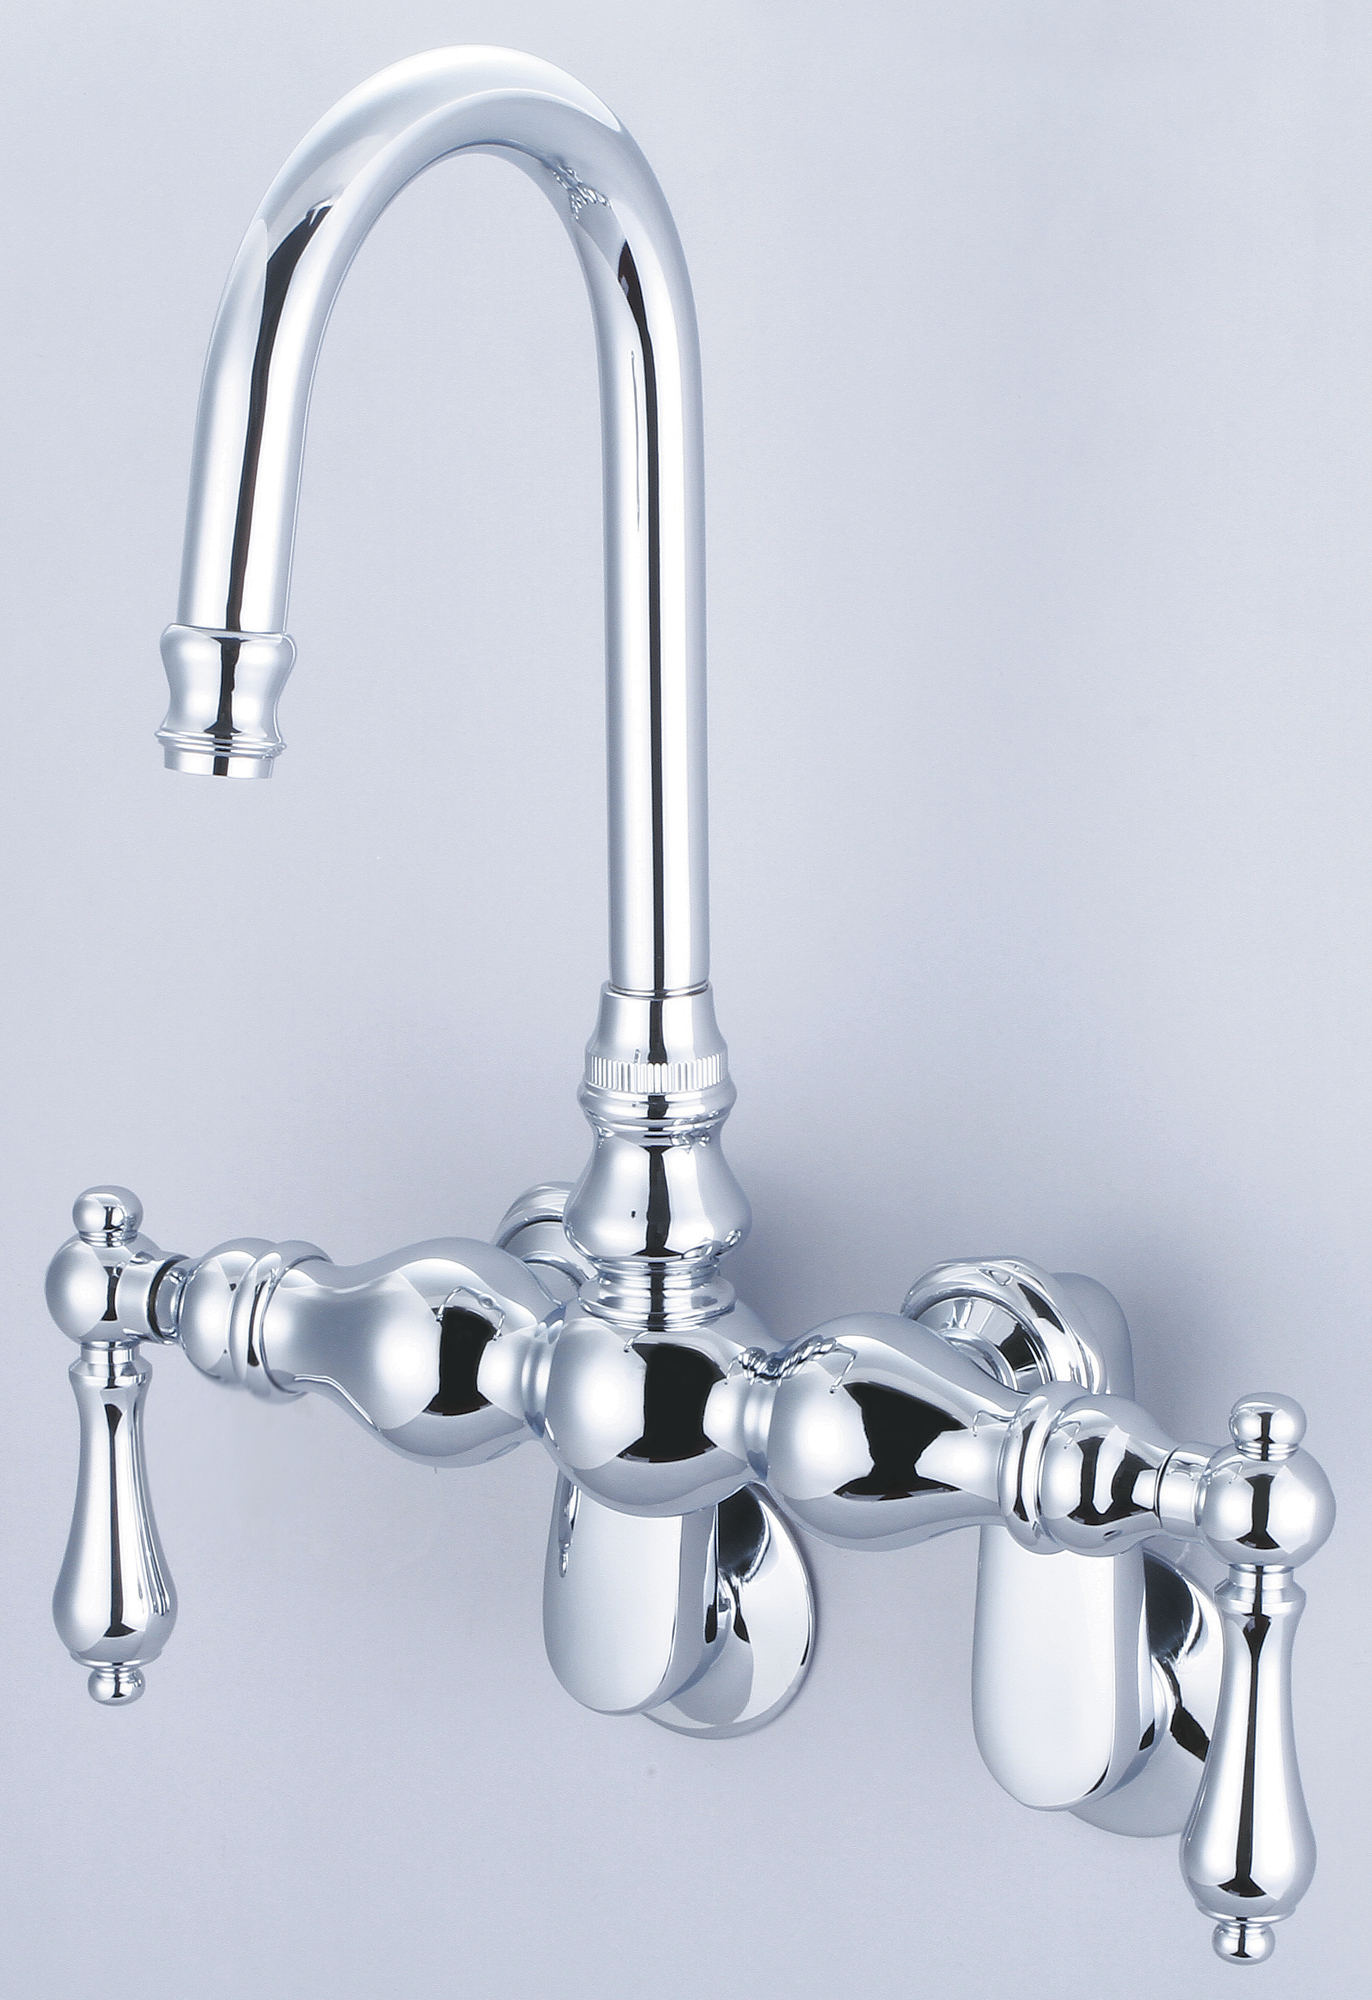 Vintage Classic Adjustable Spread Wall Mount Tub Faucet With Gooseneck Spout & Swivel Wall Connector in Chrome Finish With Metal Lever Handles Without Labels